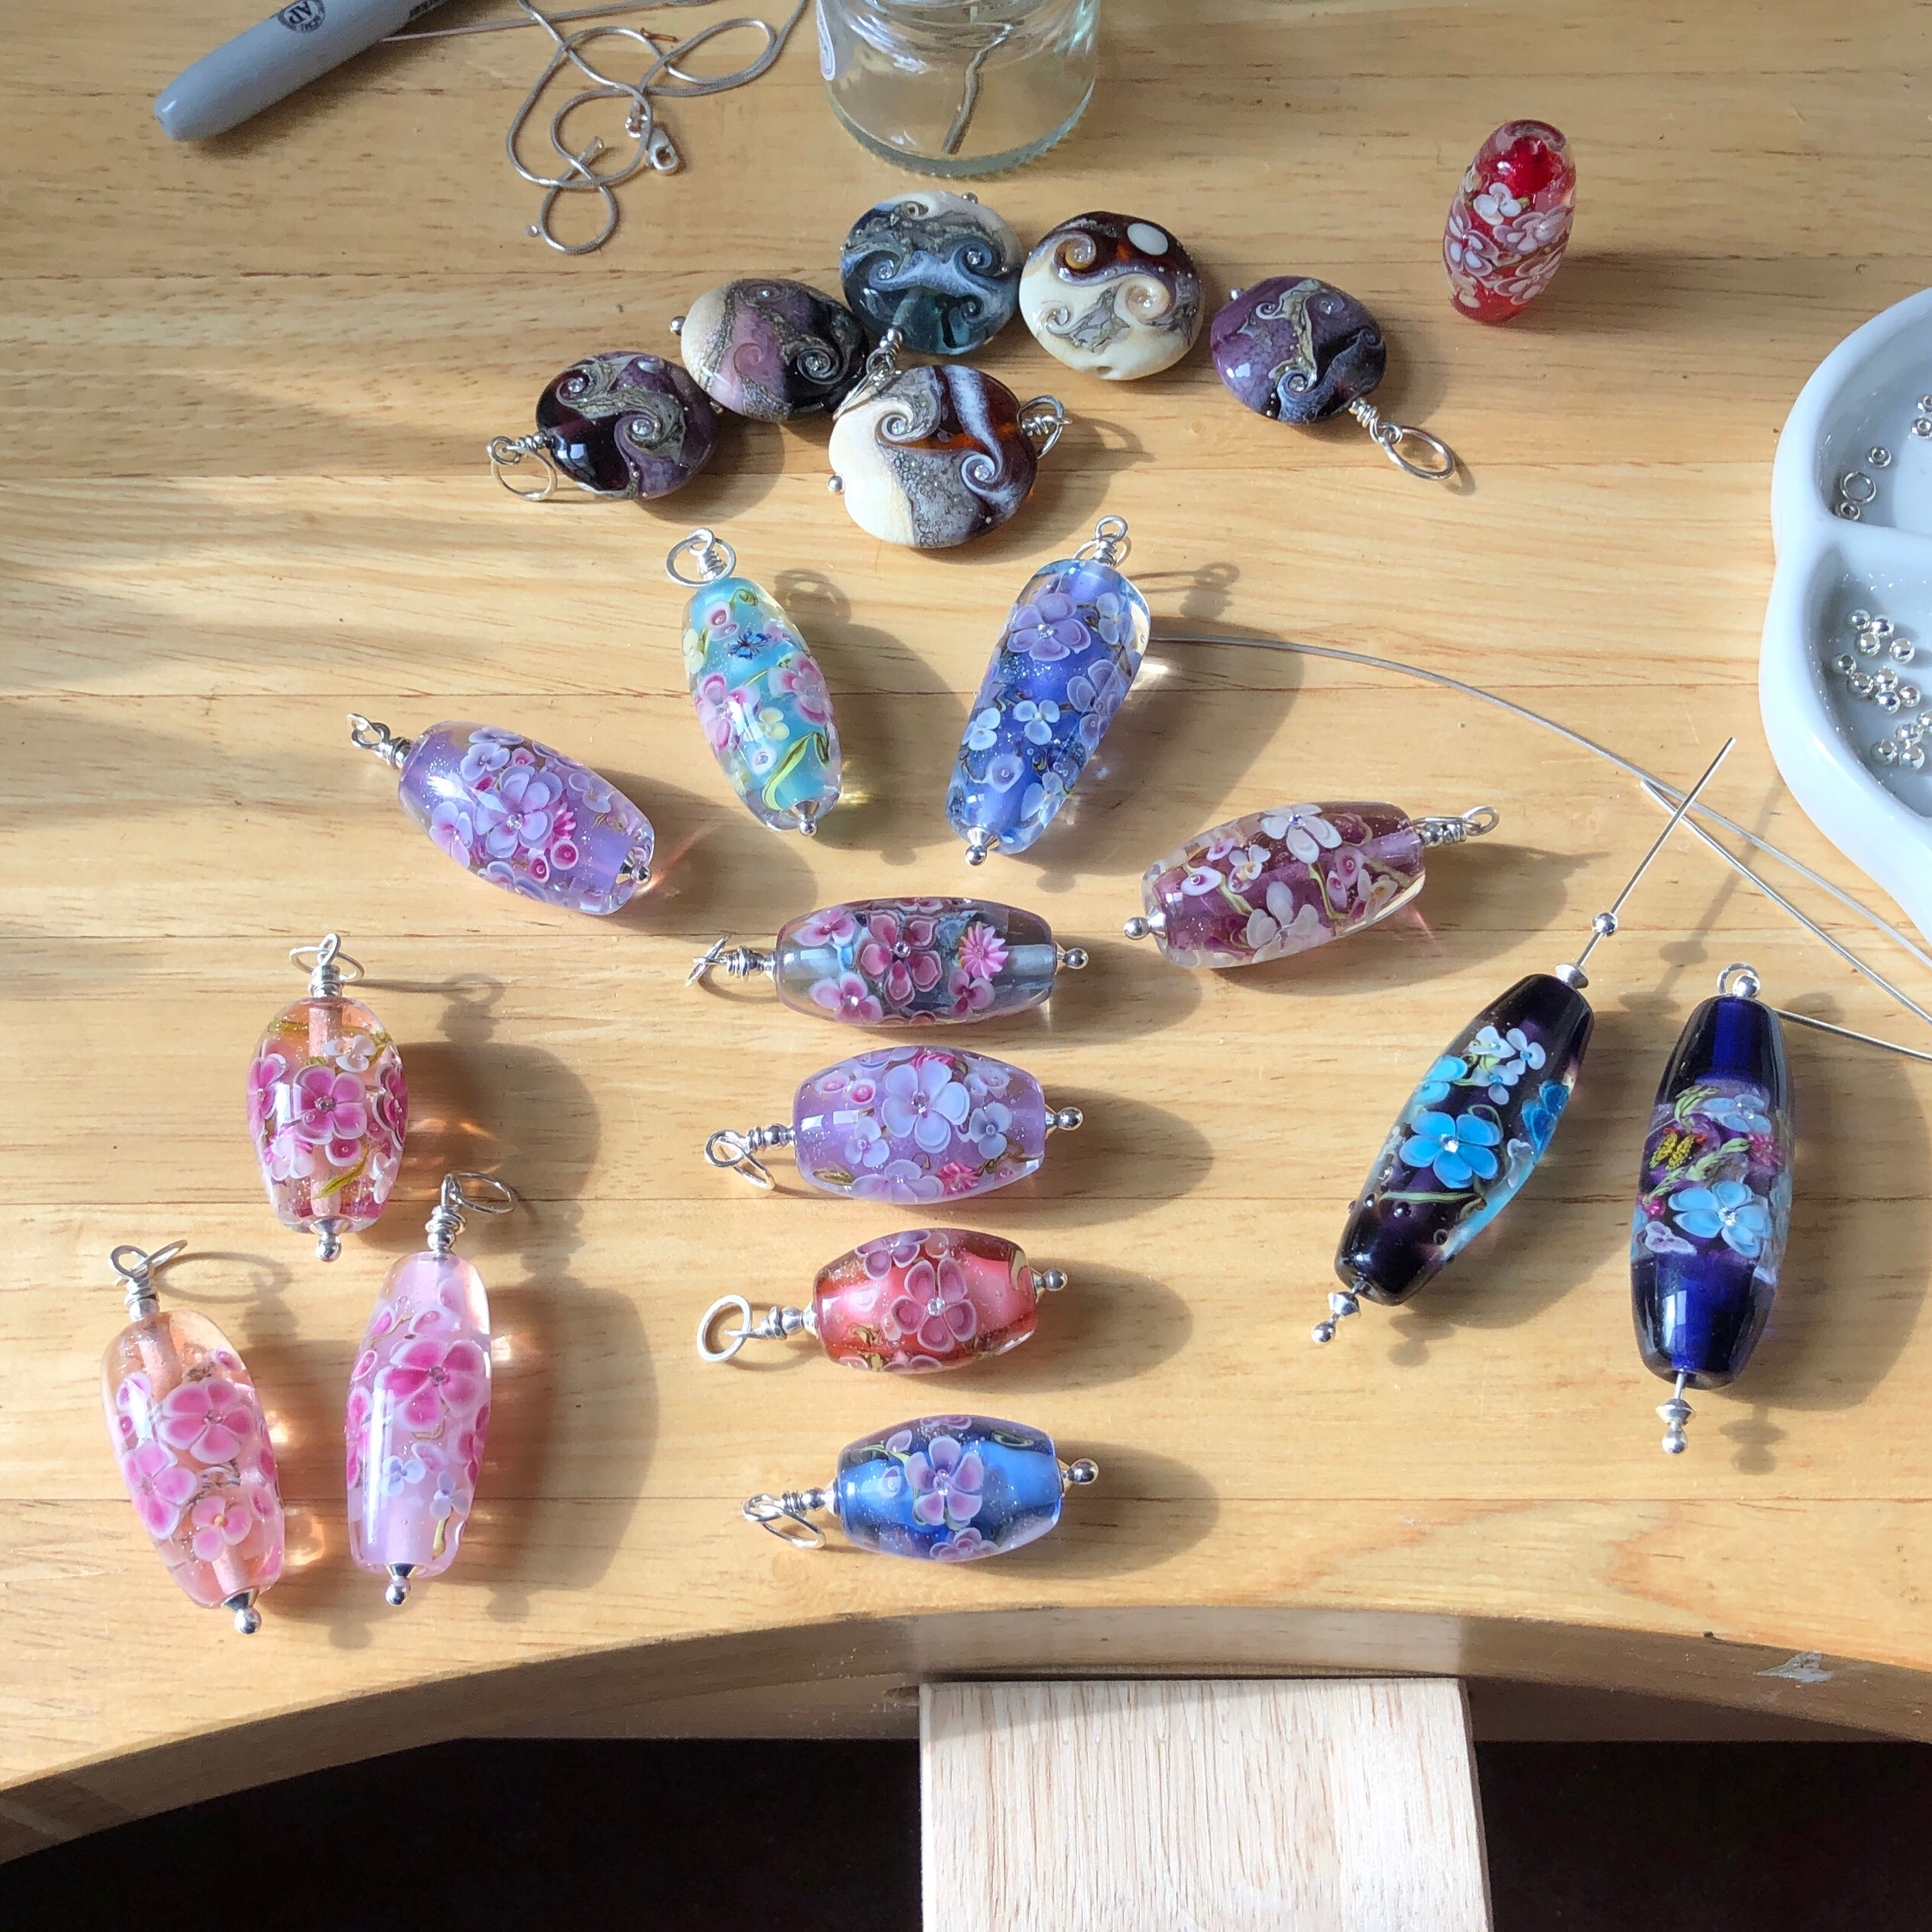 Floral necklaces nearly done